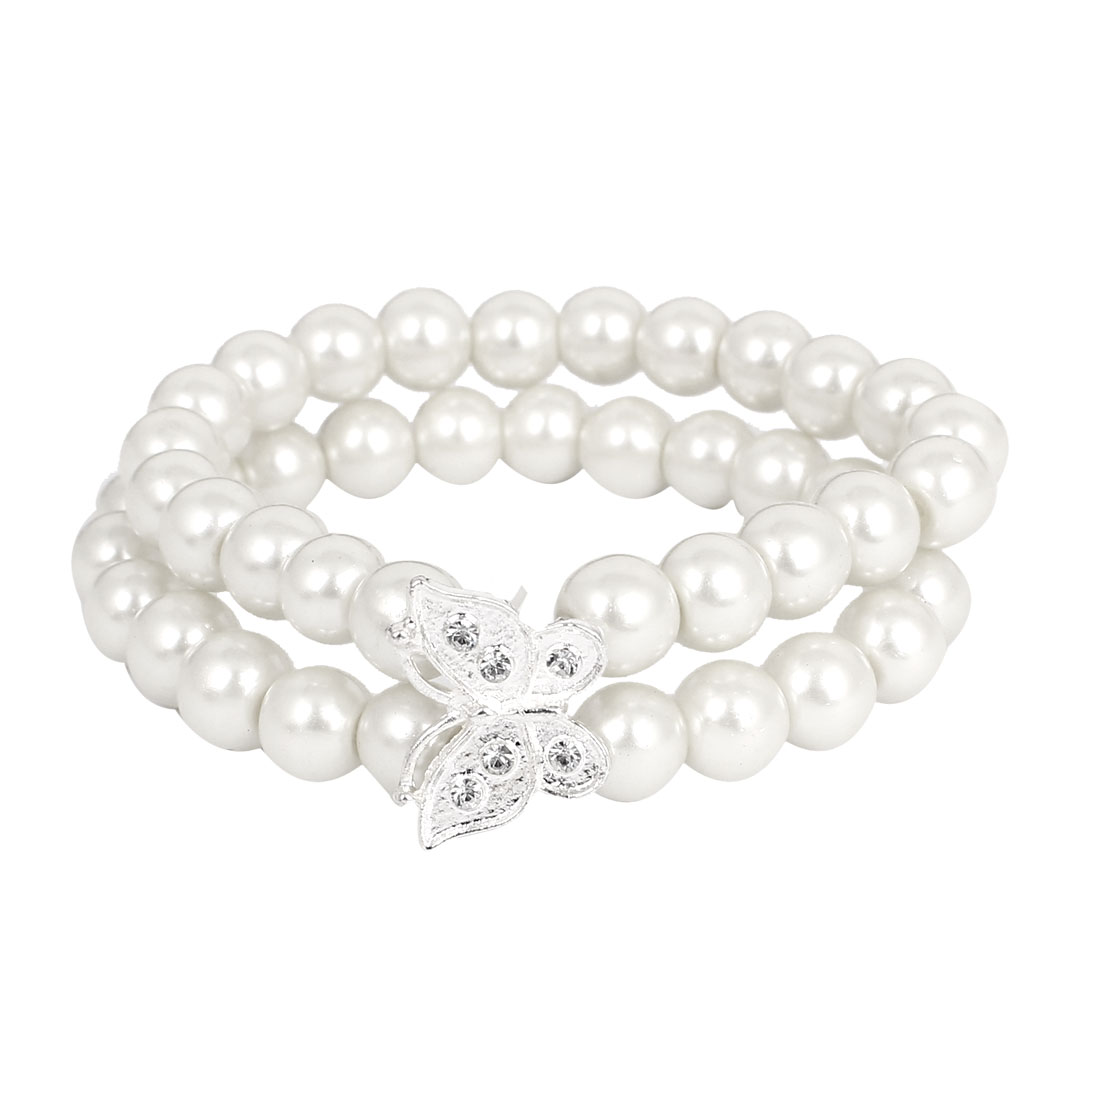 Butterfly Imitation Pearl Charm Wrap Wristband Bracelet Bangle Chain Cuff